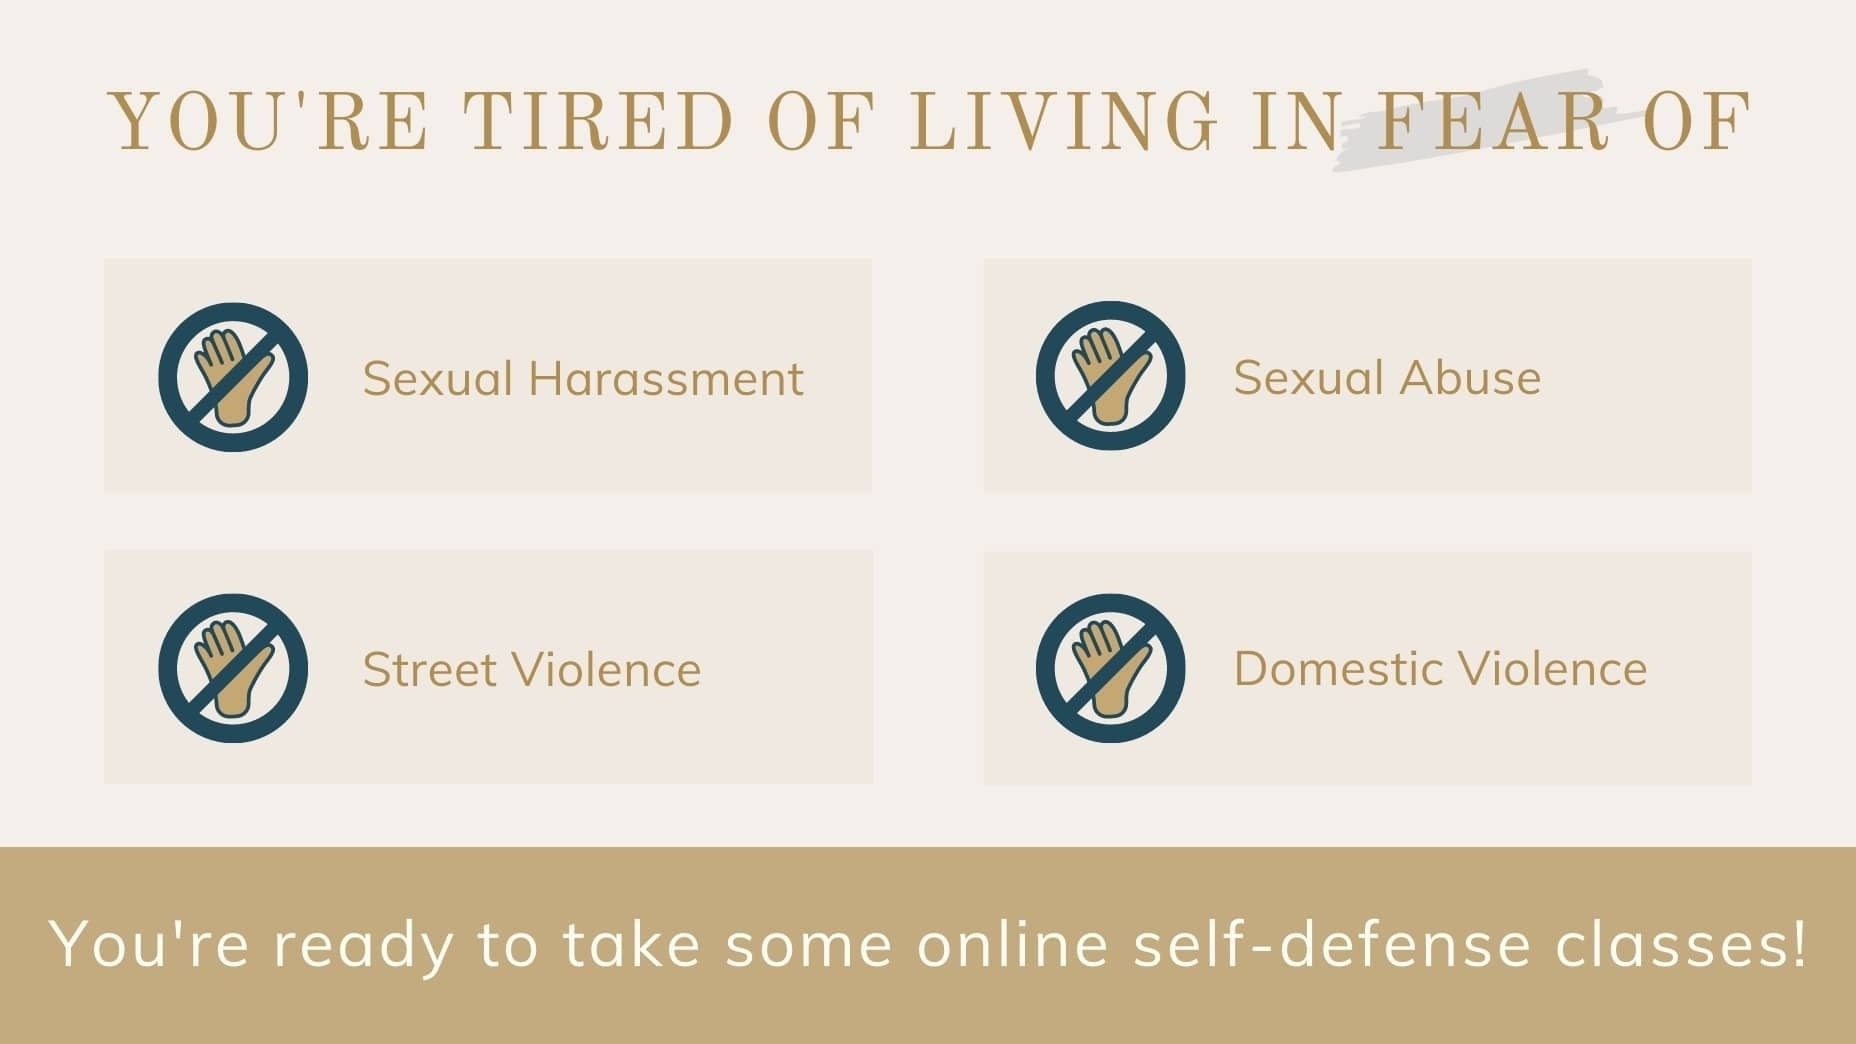 you're tired of living in fear of sexual harassment, sexual abuse, street violence, and domestic violence. You're ready to take some online self-defense classes.